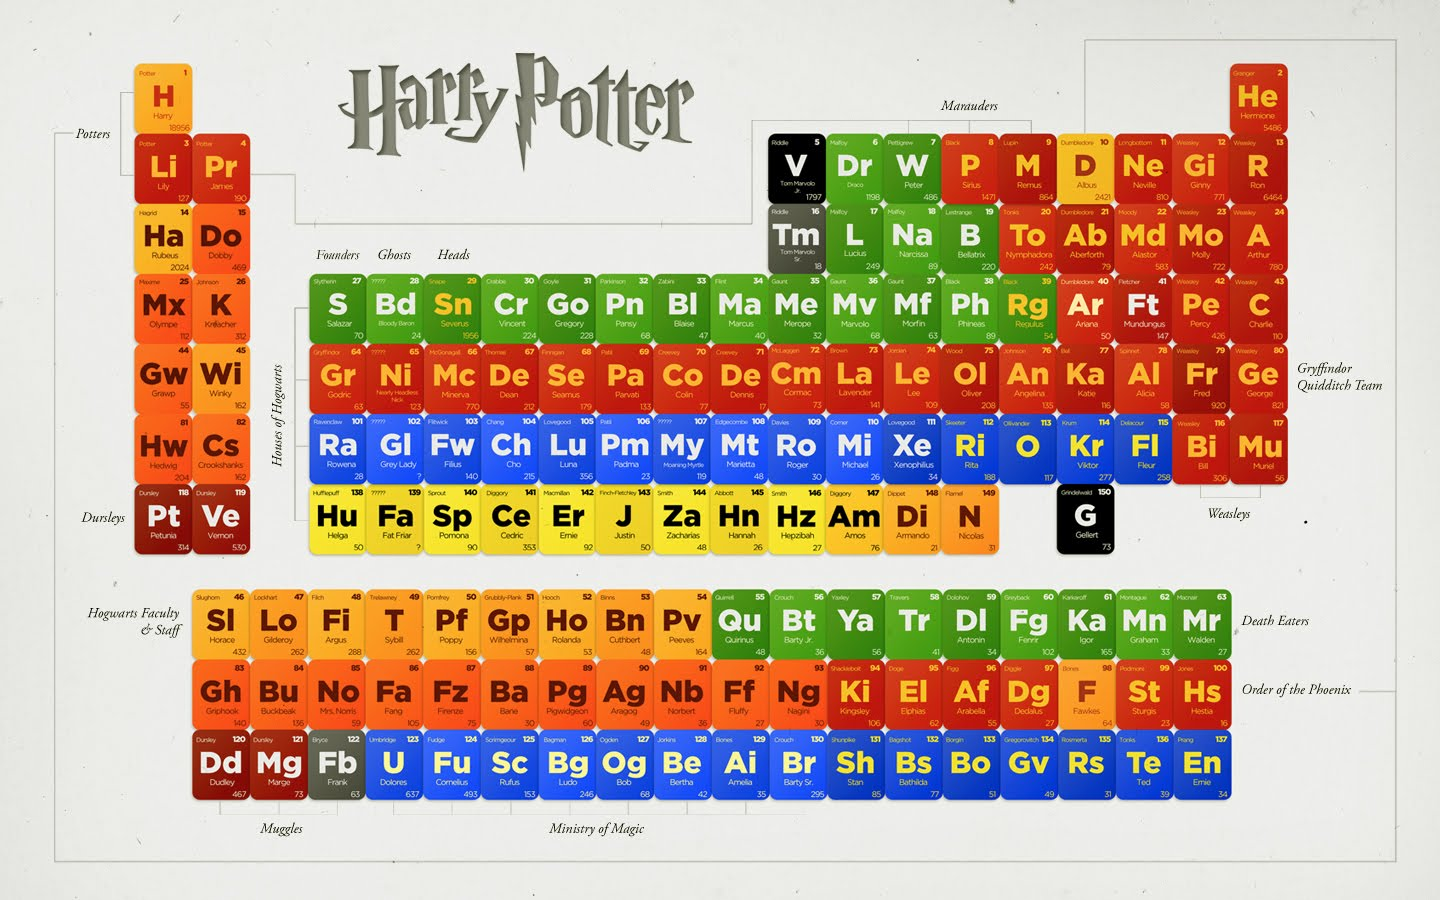 Harry potter periodic table of elements from thp the periodic table gamestrikefo Choice Image